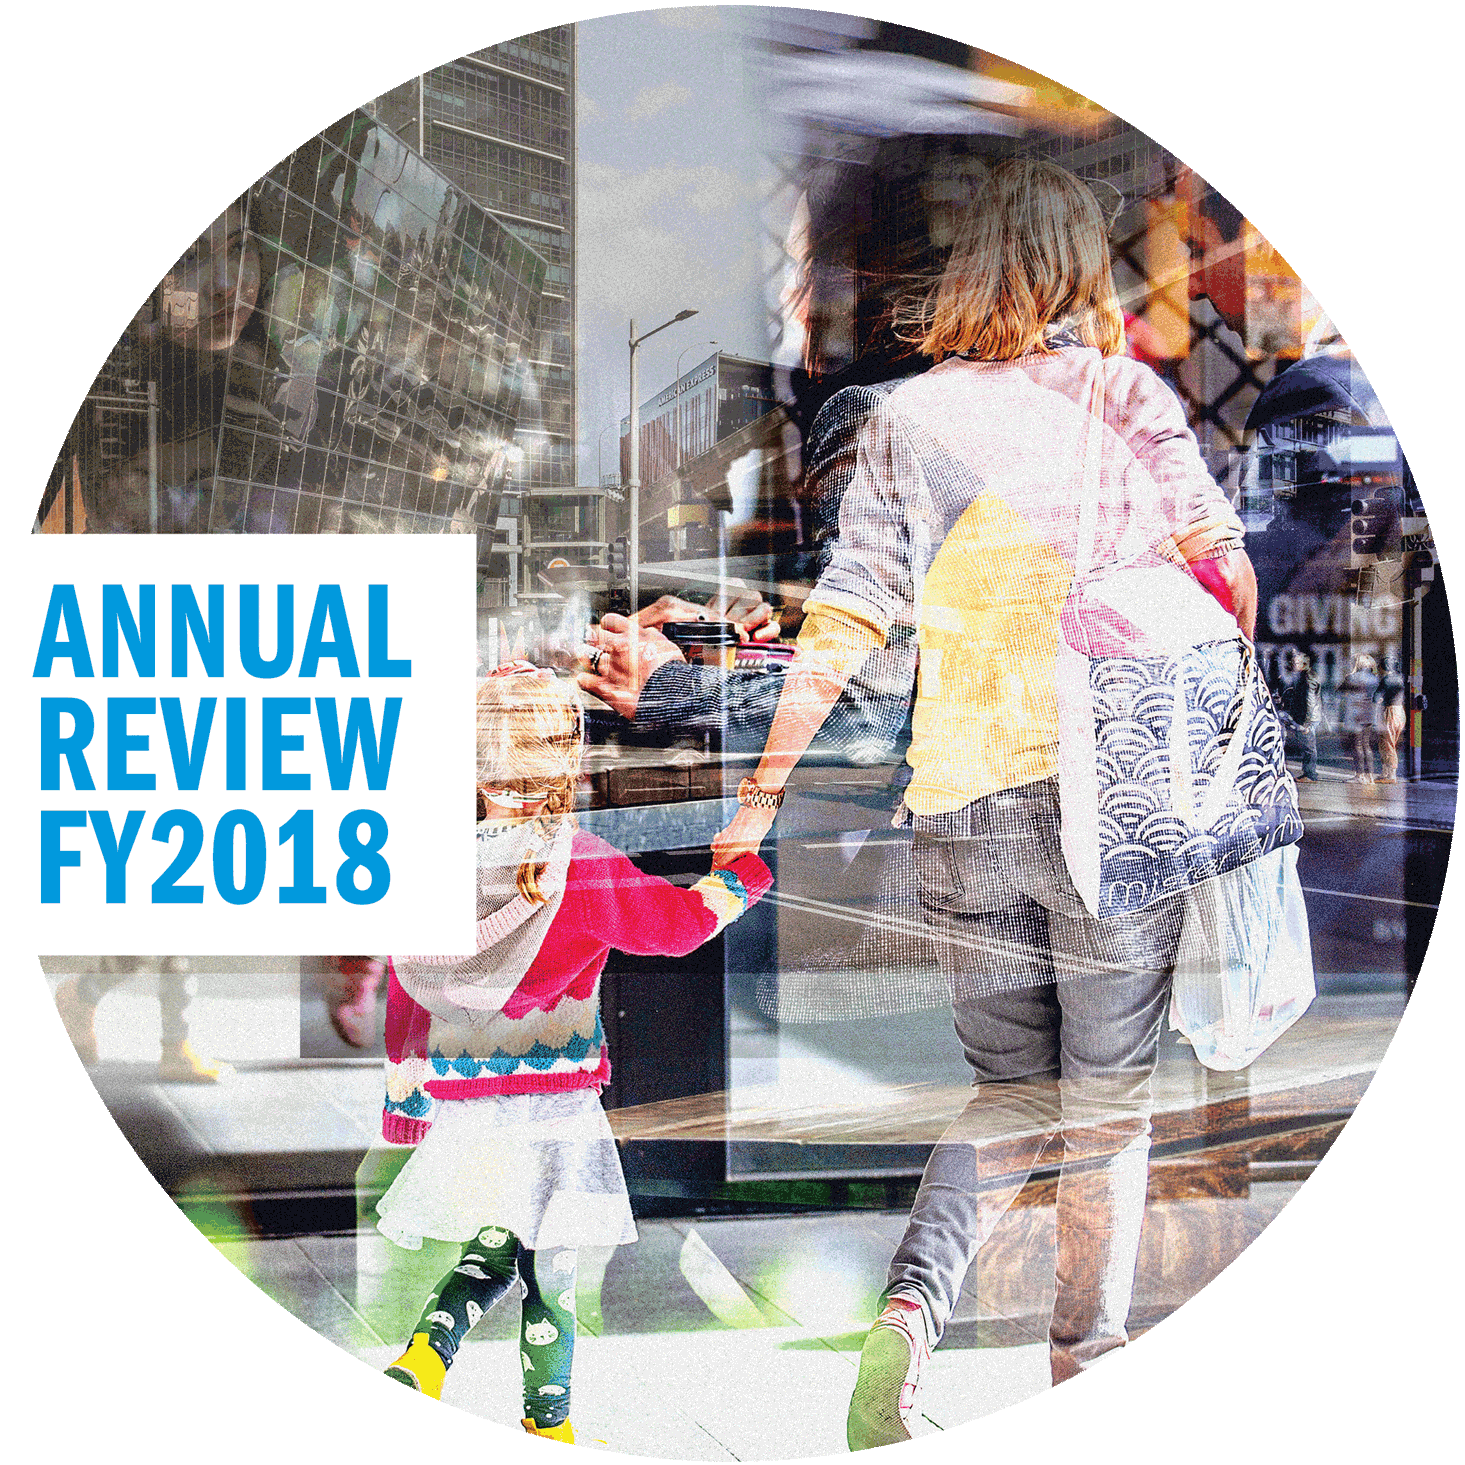 FY2018 Annual Review